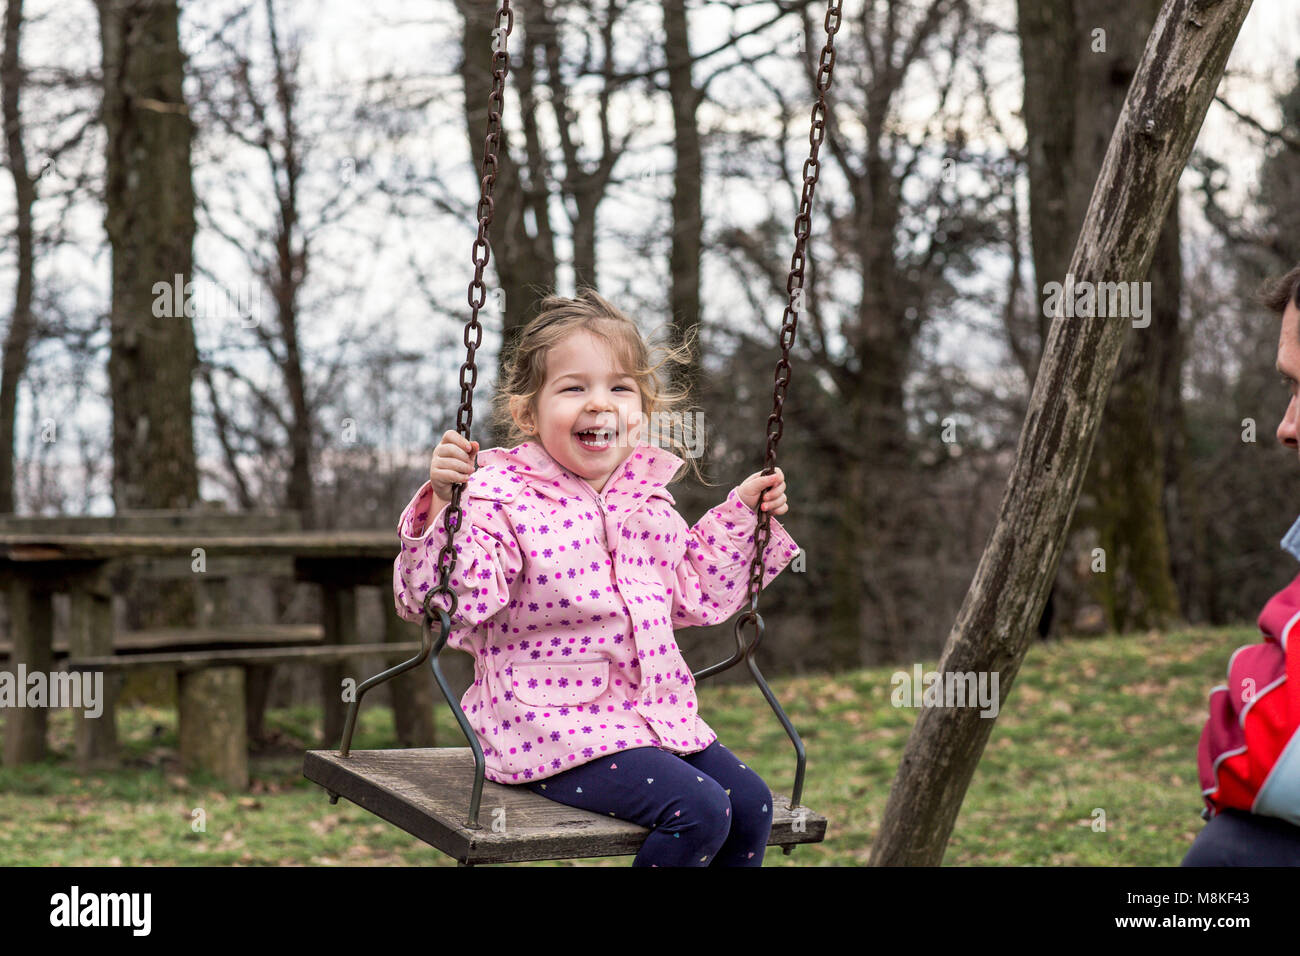 smiling cute girl swinging with her father - Stock Image